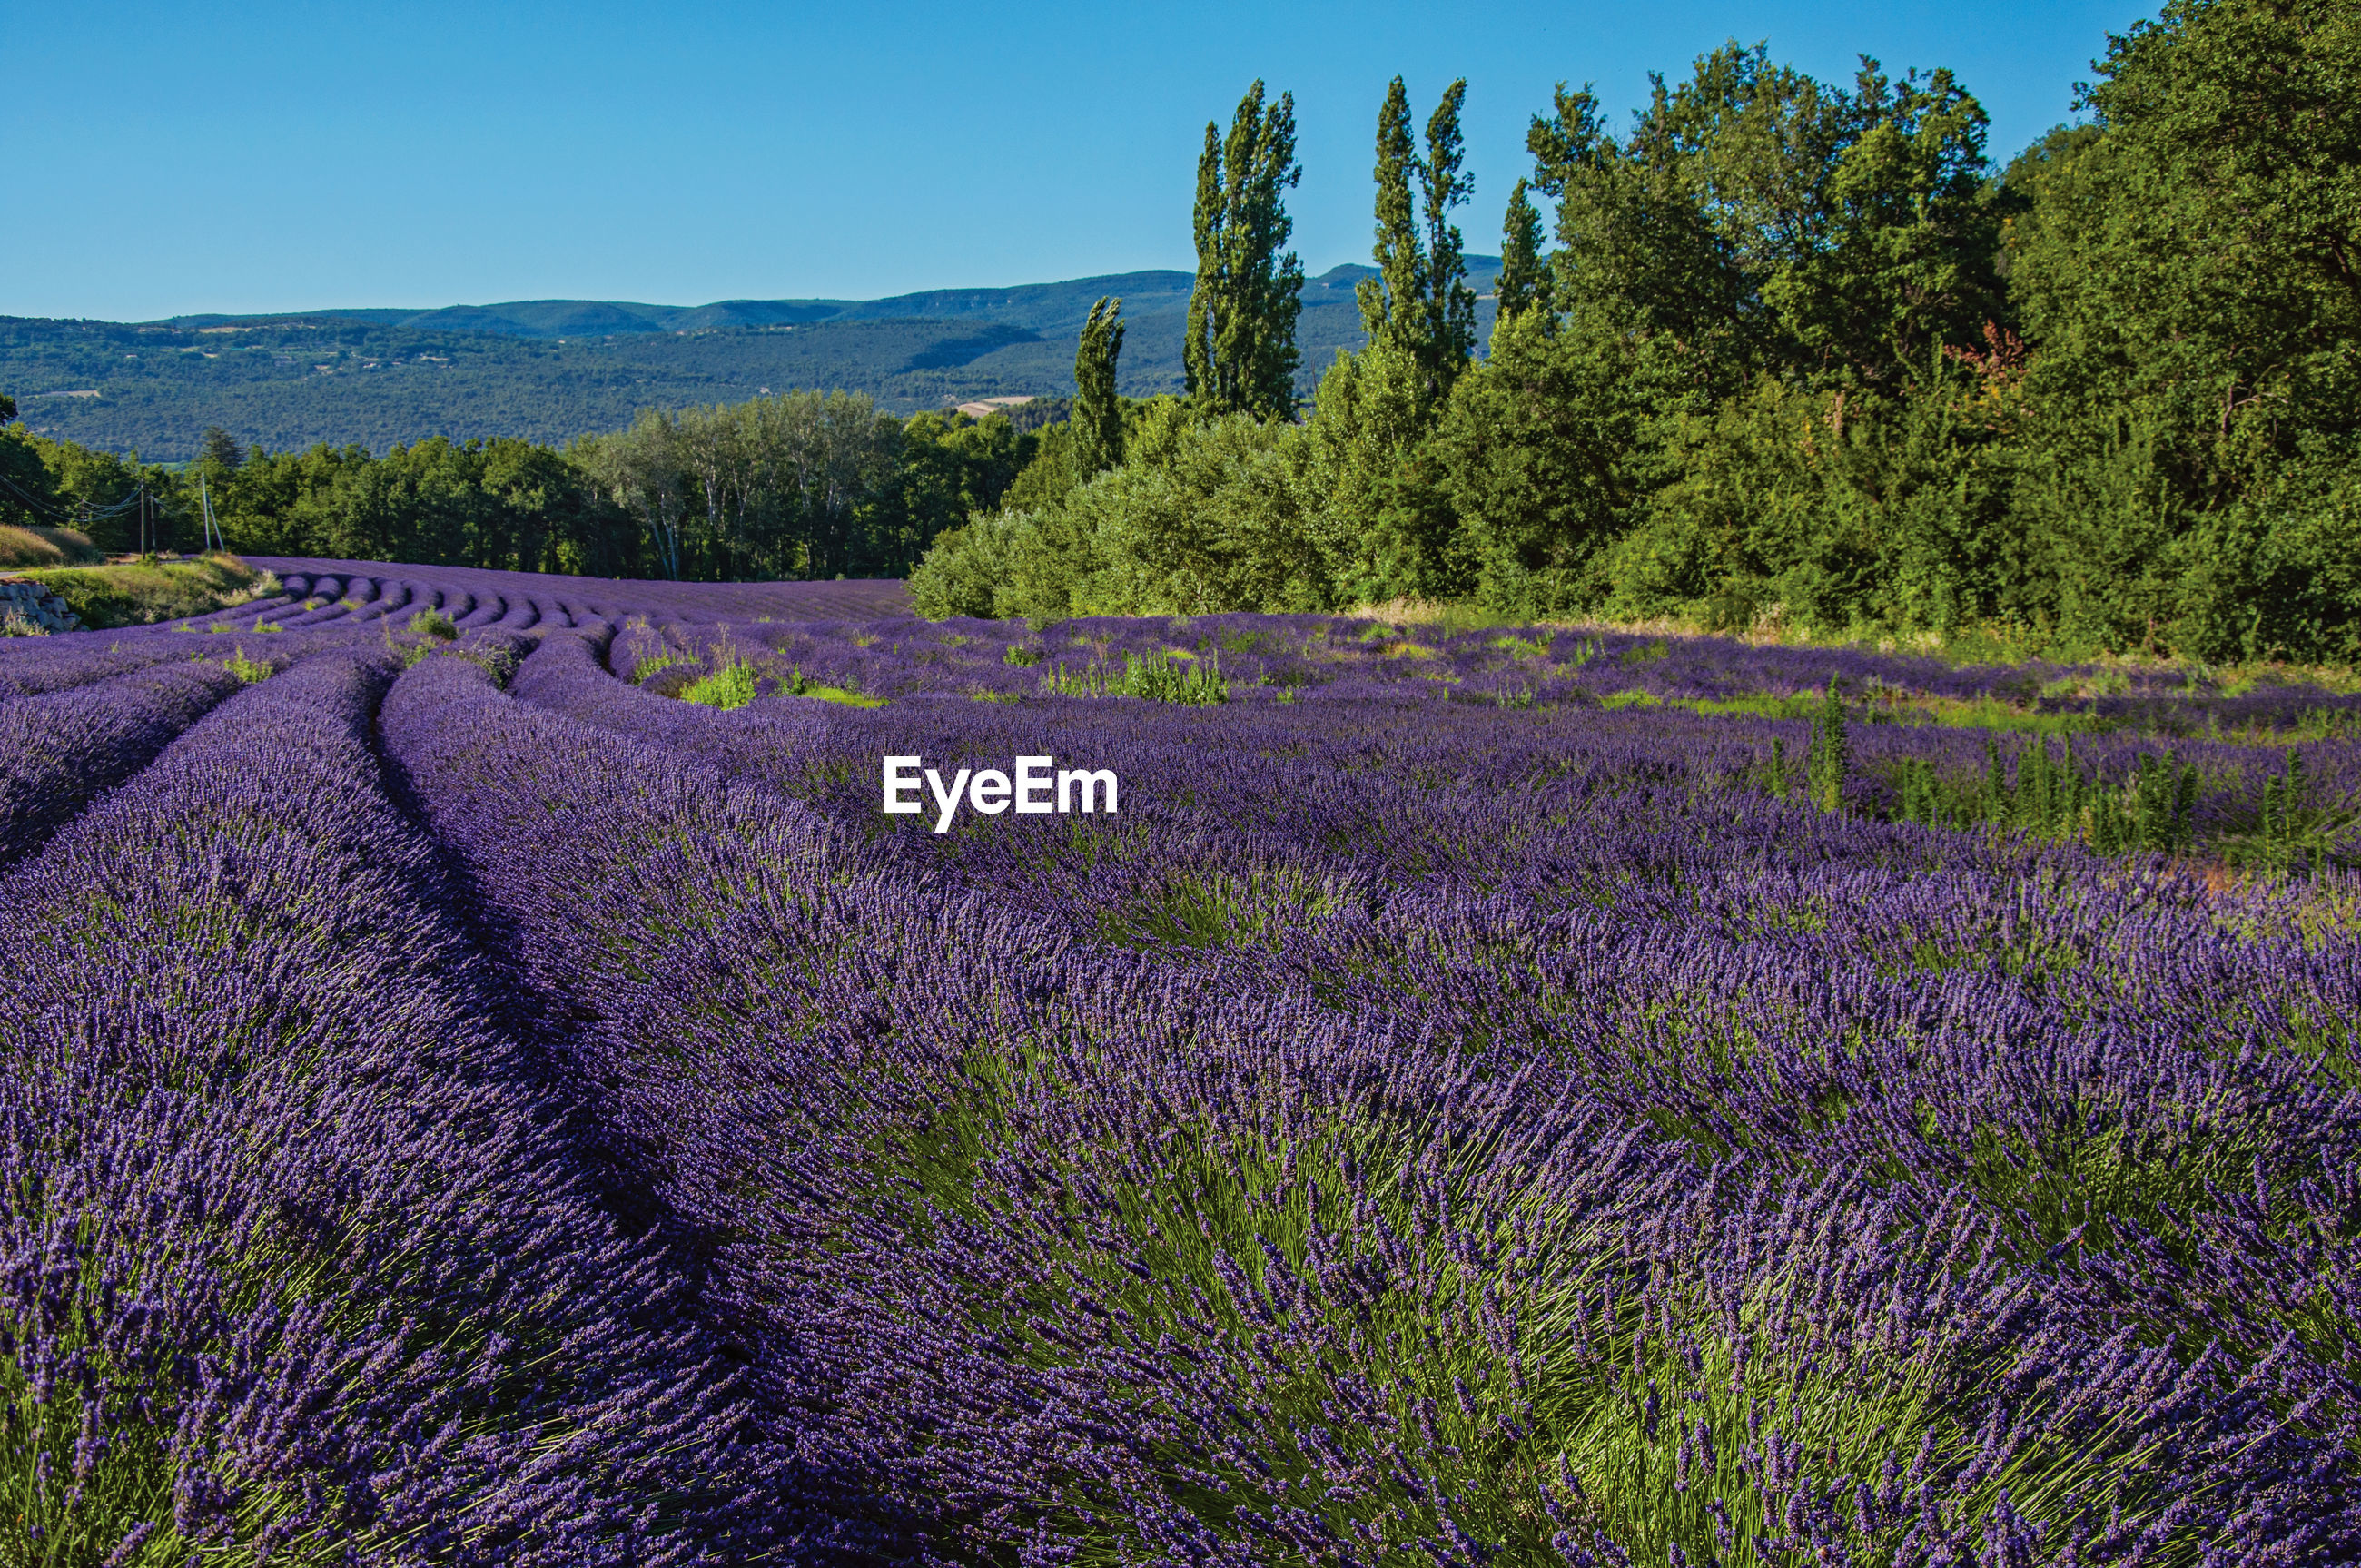 SCENIC VIEW OF FIELD BY TREES AND PURPLE FLOWERS